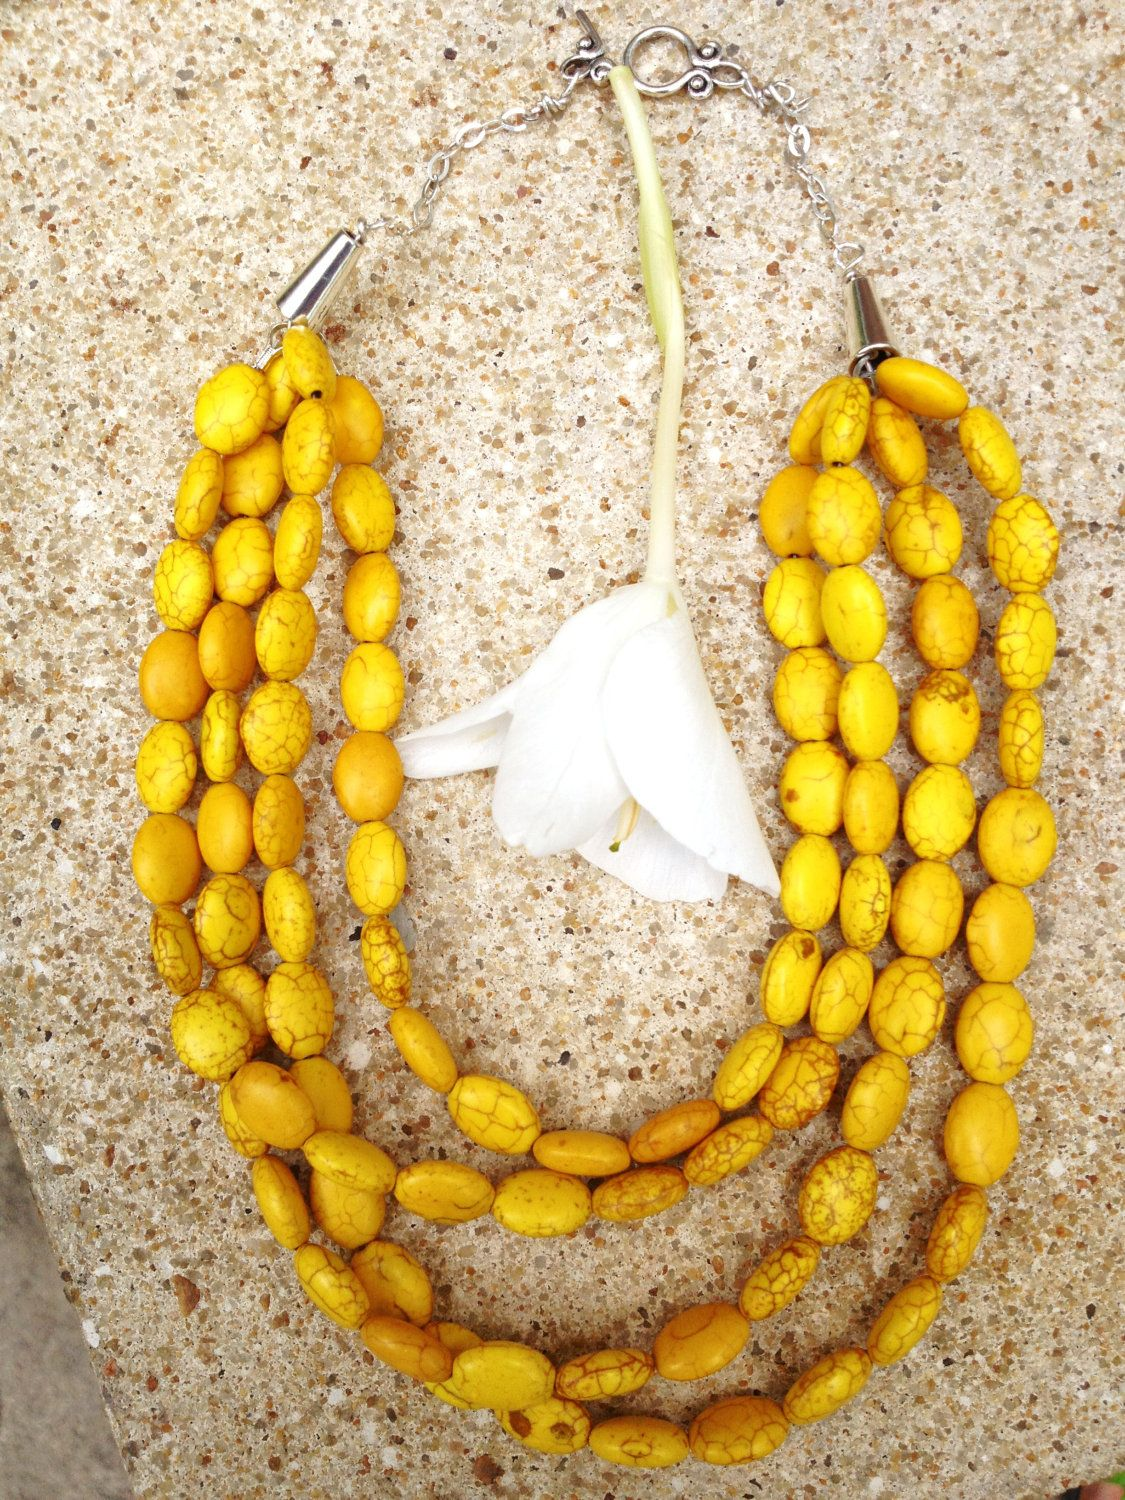 Yellow Turquoise Necklace, Yellow Necklace, Yellow Bead Necklace, Yellow Stone Necklace, Yellow Multi-Strand Necklace. $30.00, via Etsy.